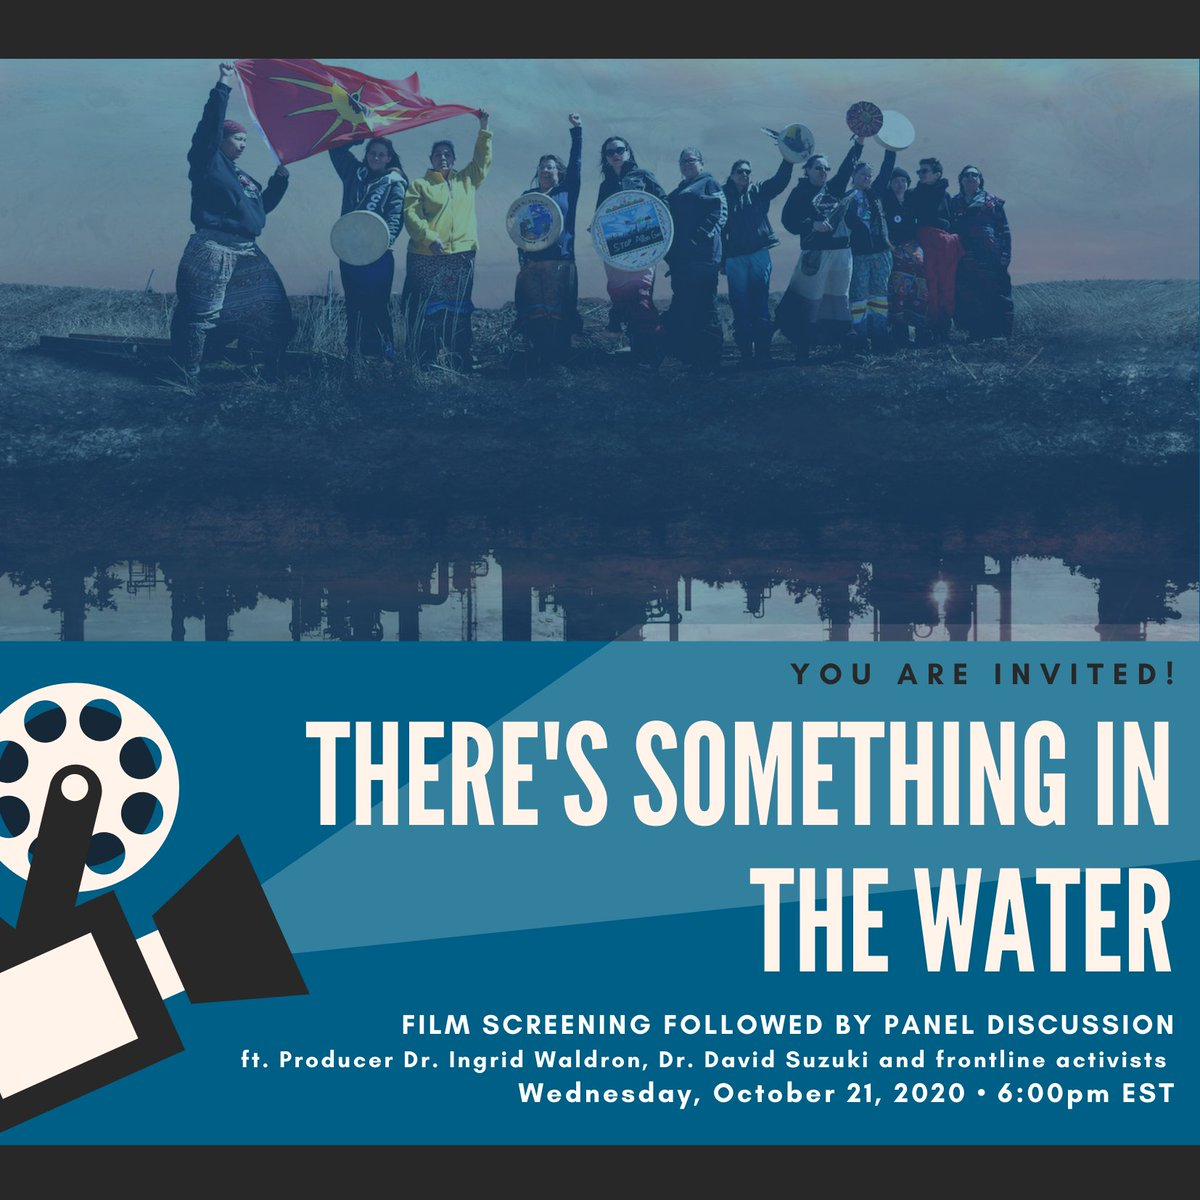 Tomorrow! Join us for a screening of Theres Something In The Water followed by a panel discussion with film producer, Dr. Ingrid Waldron, Dr. David Suzuki and frontline activists. RSVP here ➡️ bit.ly/2Fh4bGs